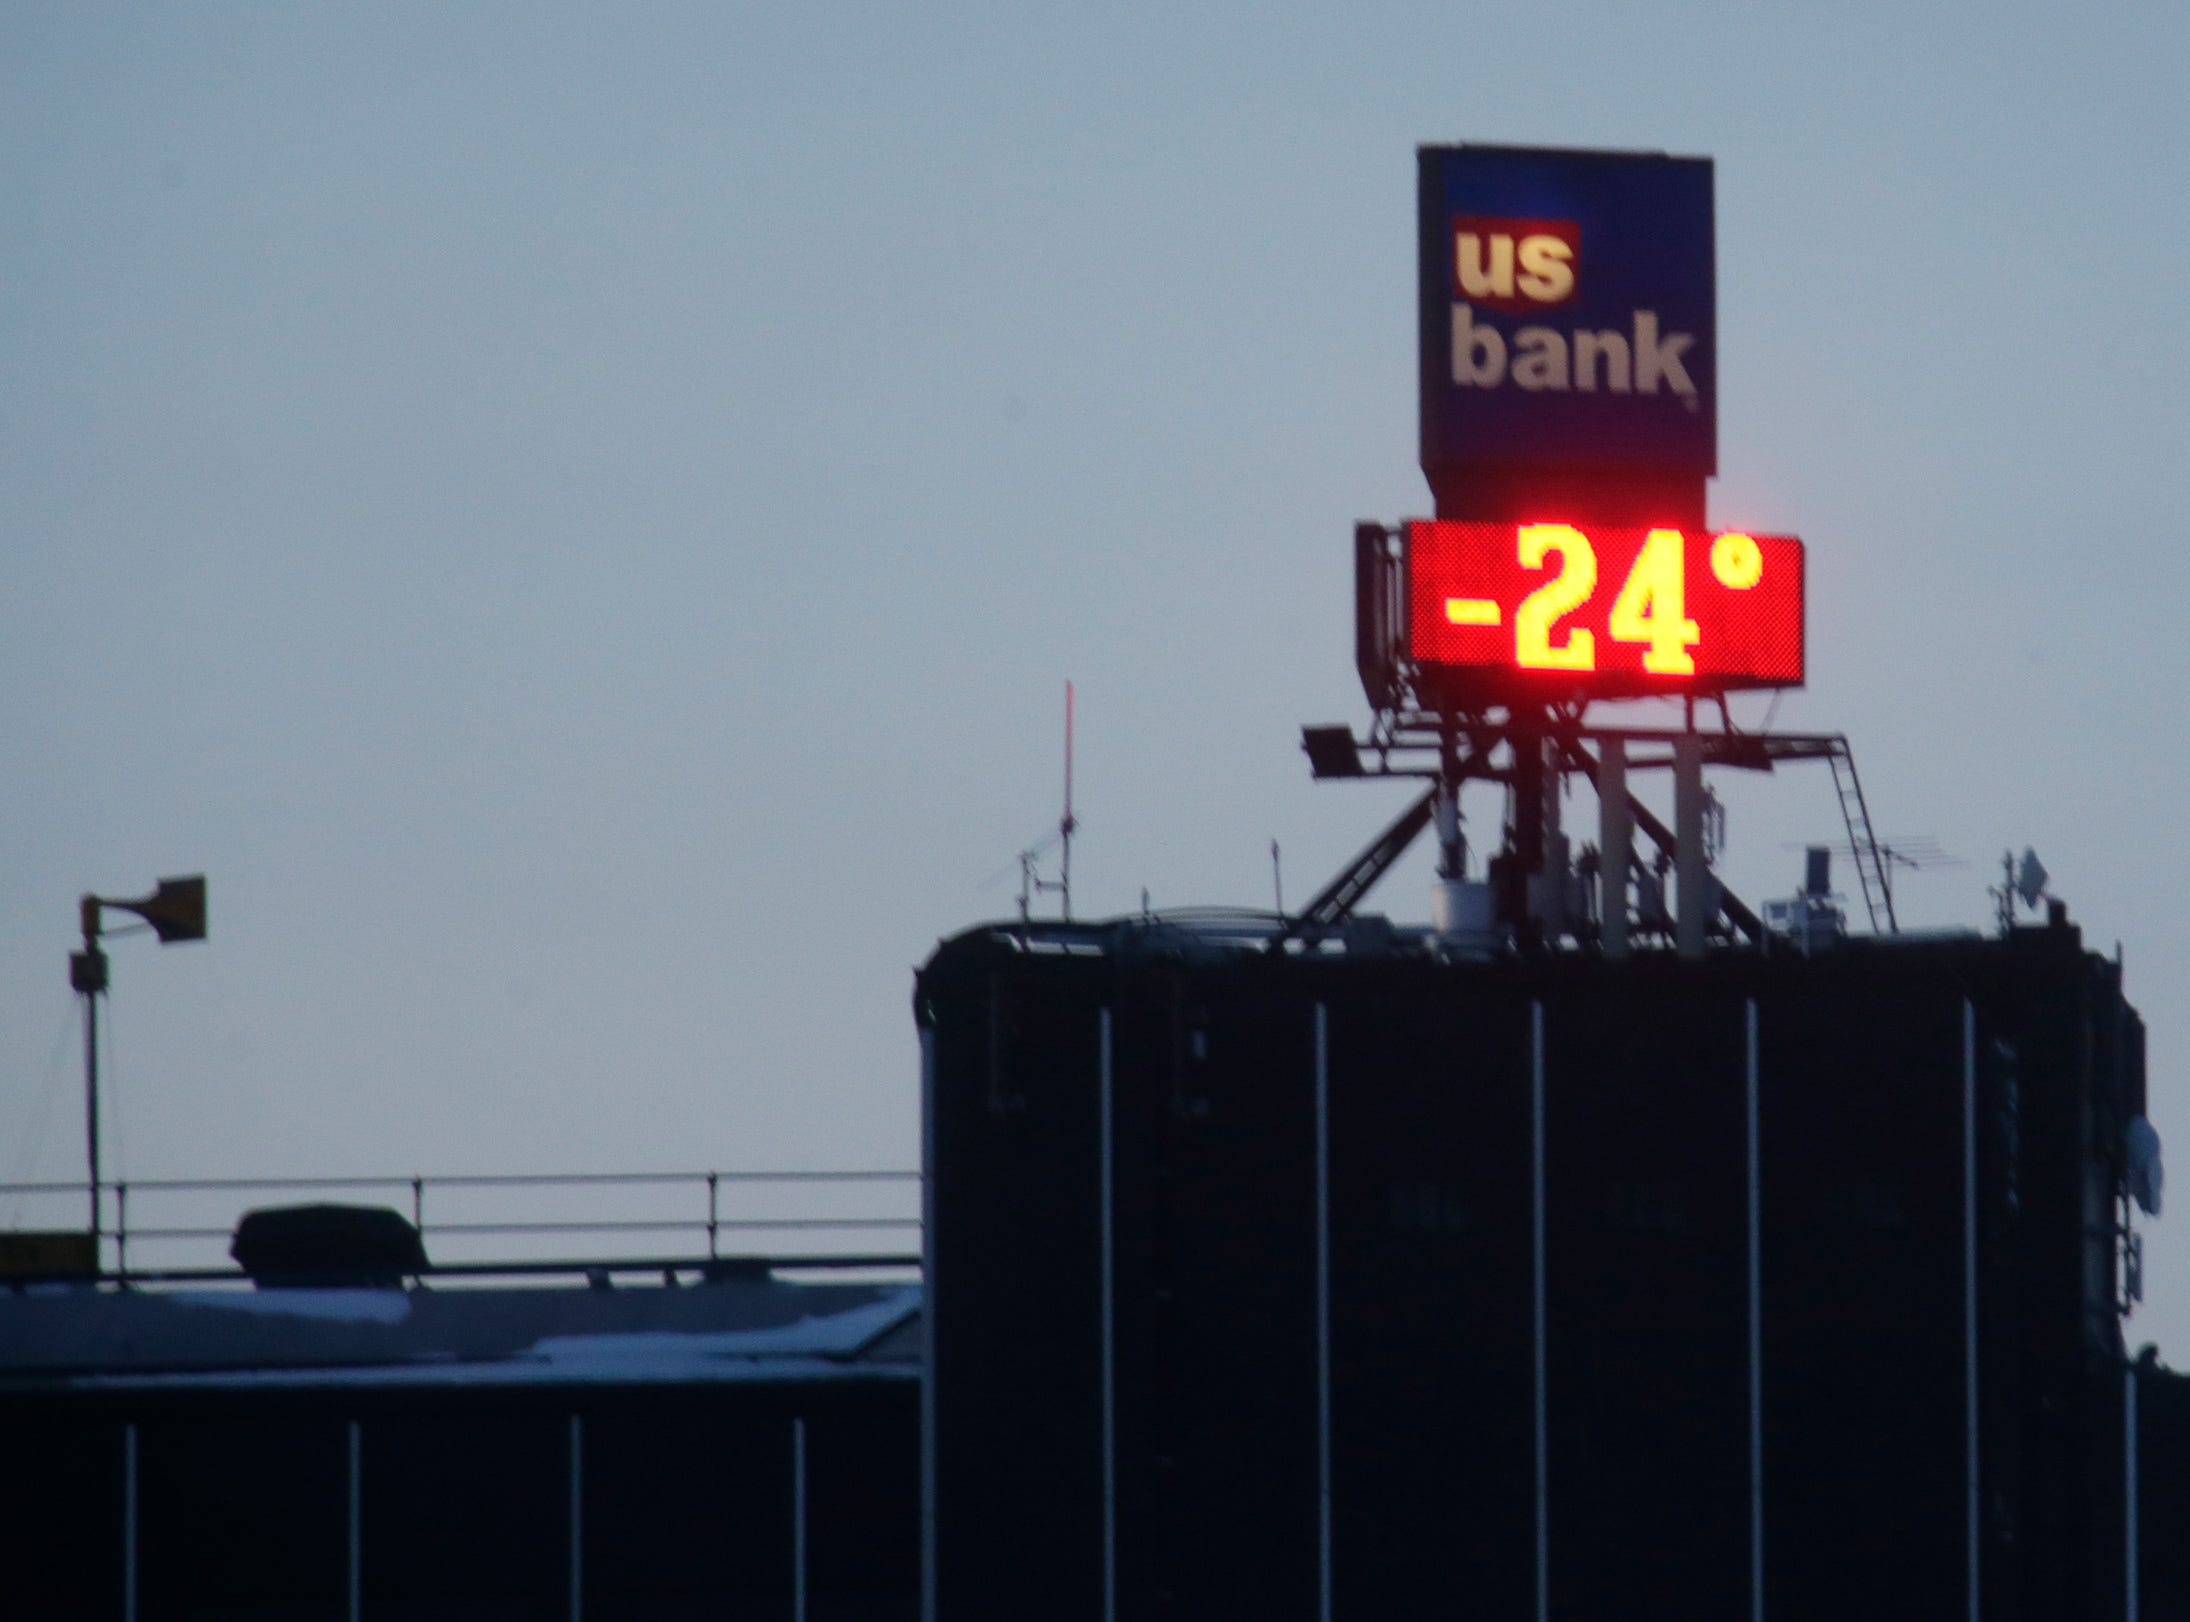 At 6:30 am, the U.S. Bank clock indicated -24 degrees F, Wednesday, January 30, 2019, in Sheboygan, Wis.